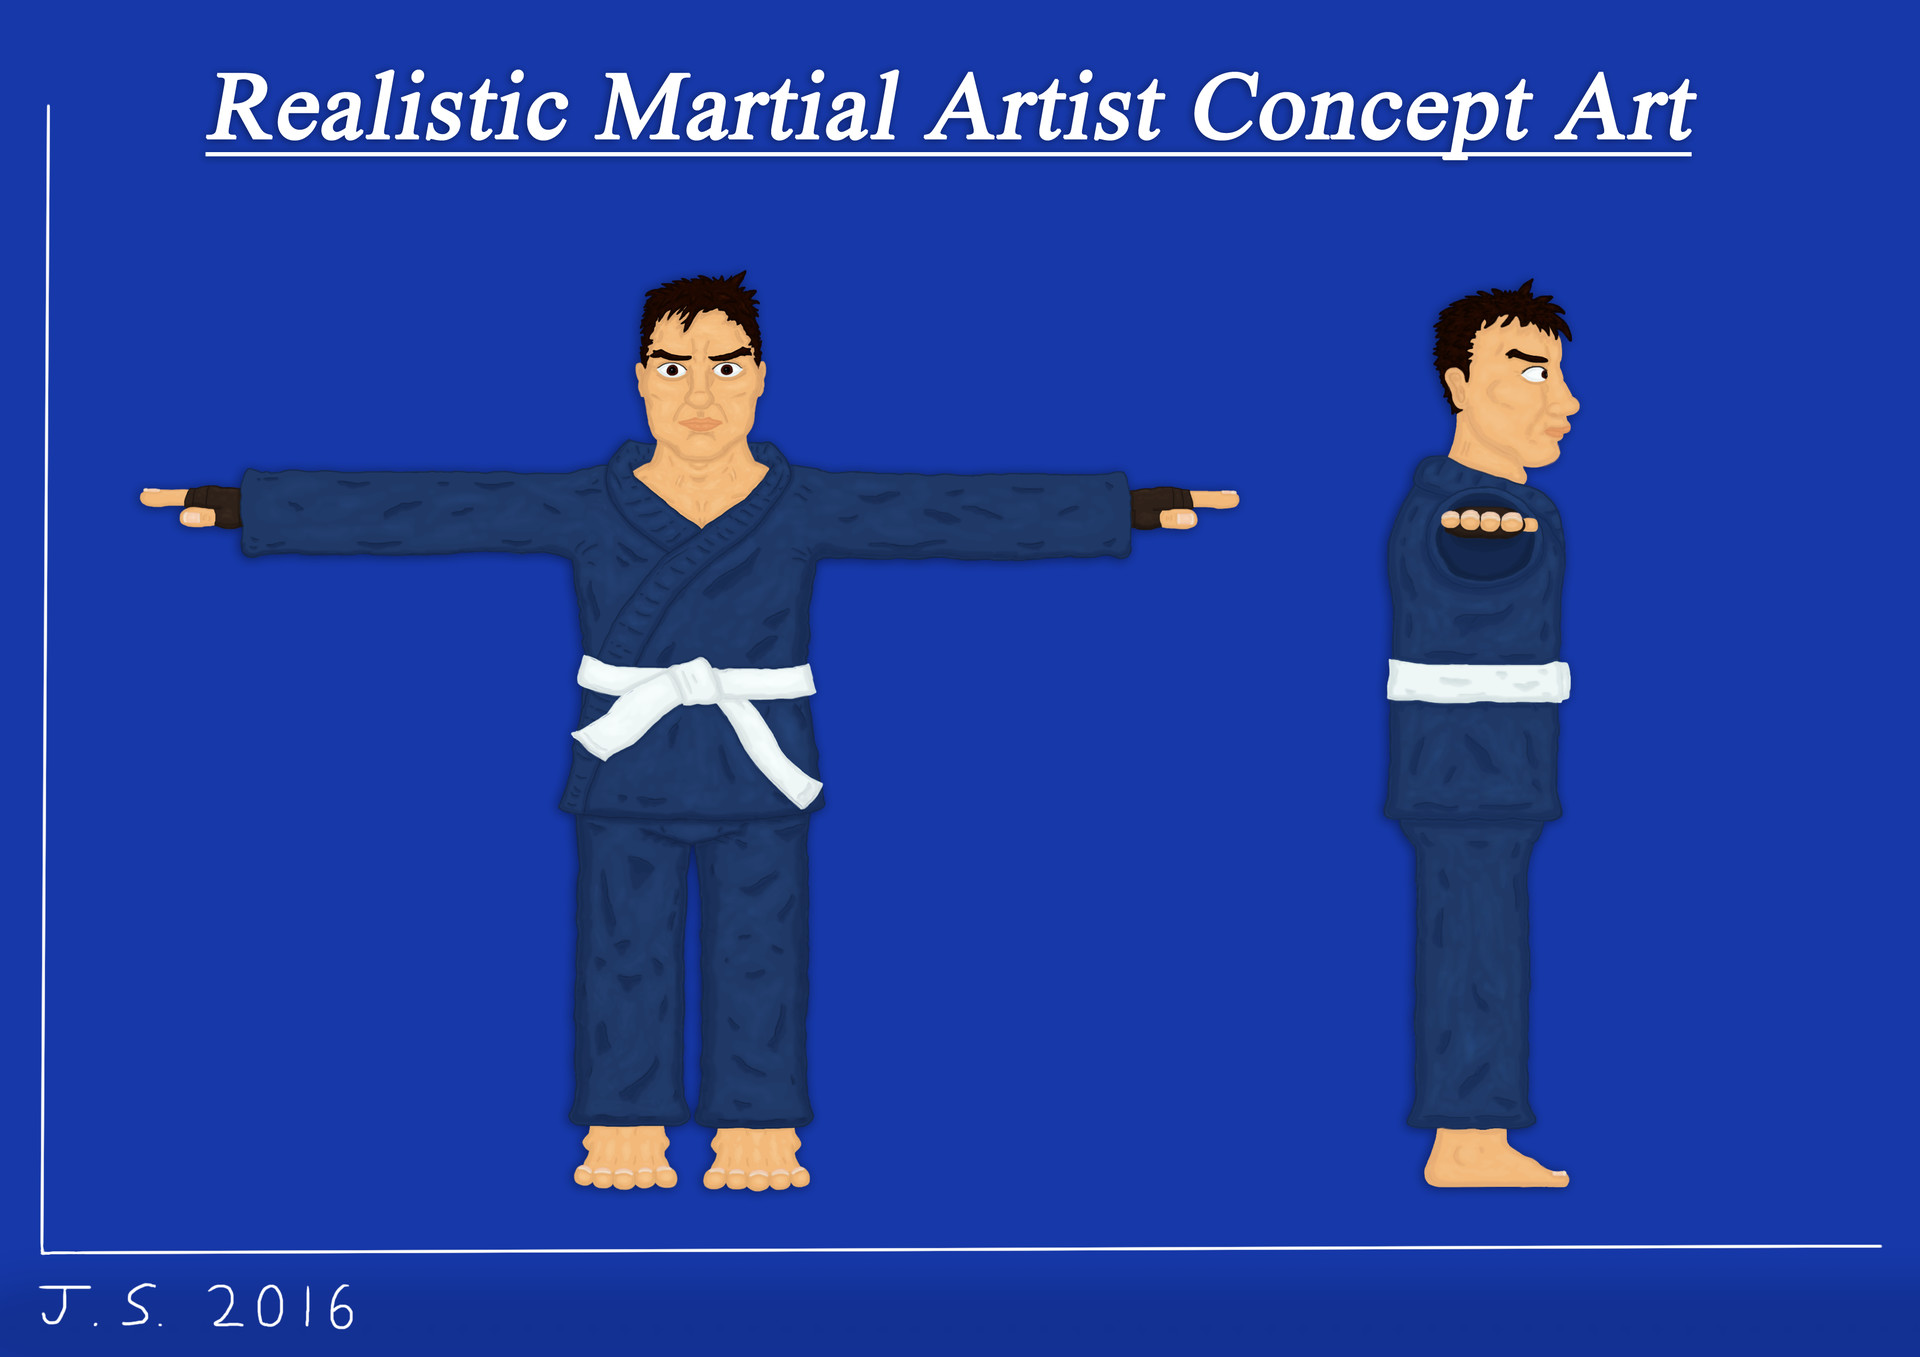 James skinner martialartist concept